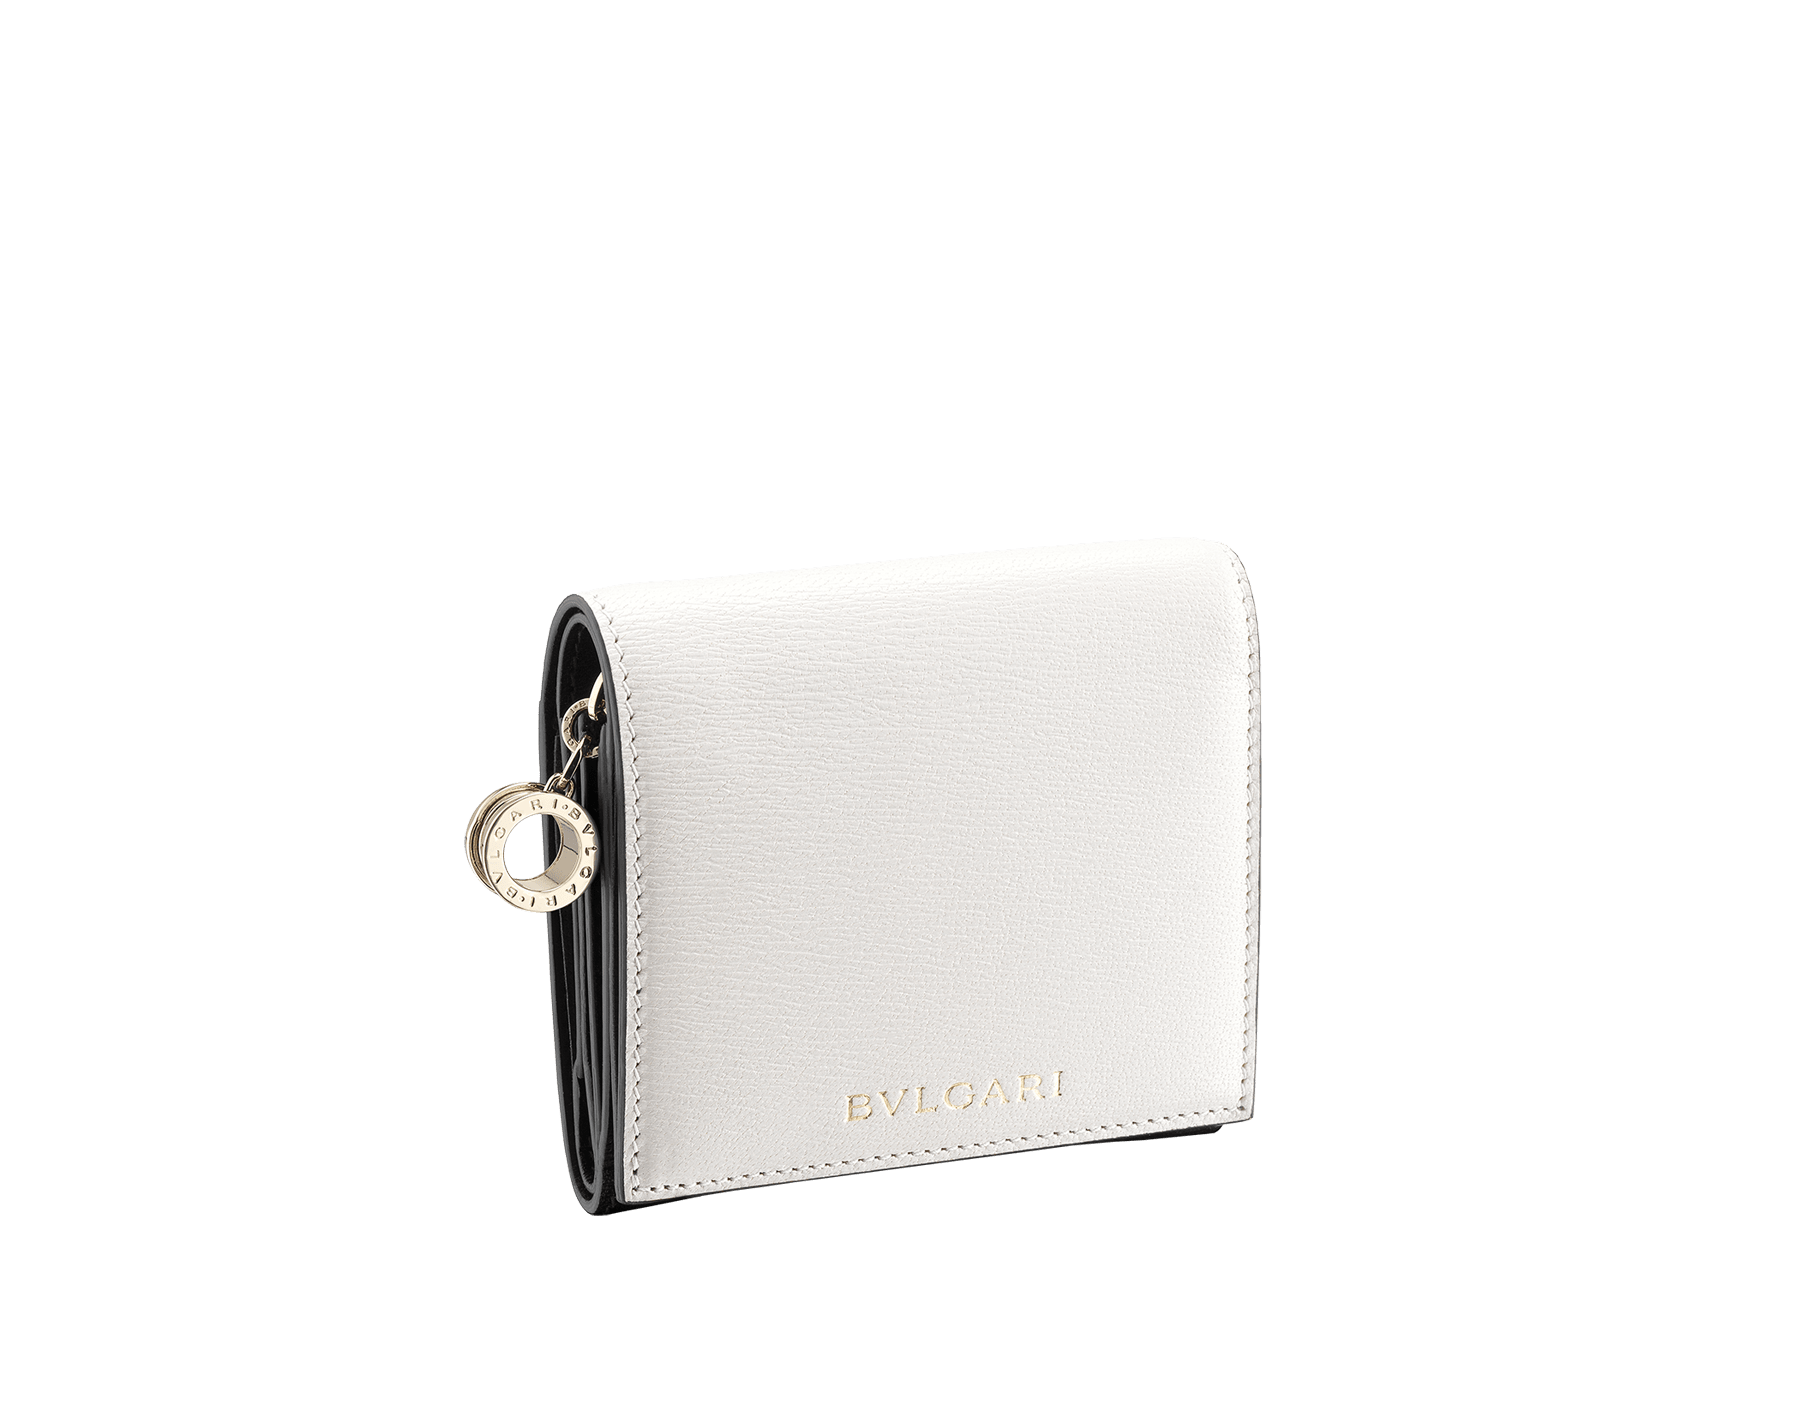 B.zero1 super compact wallet in white and black goatskin. Iconic B.zero1 charm in light gold plated brass. BZA-SUPERCOMPACT image 1